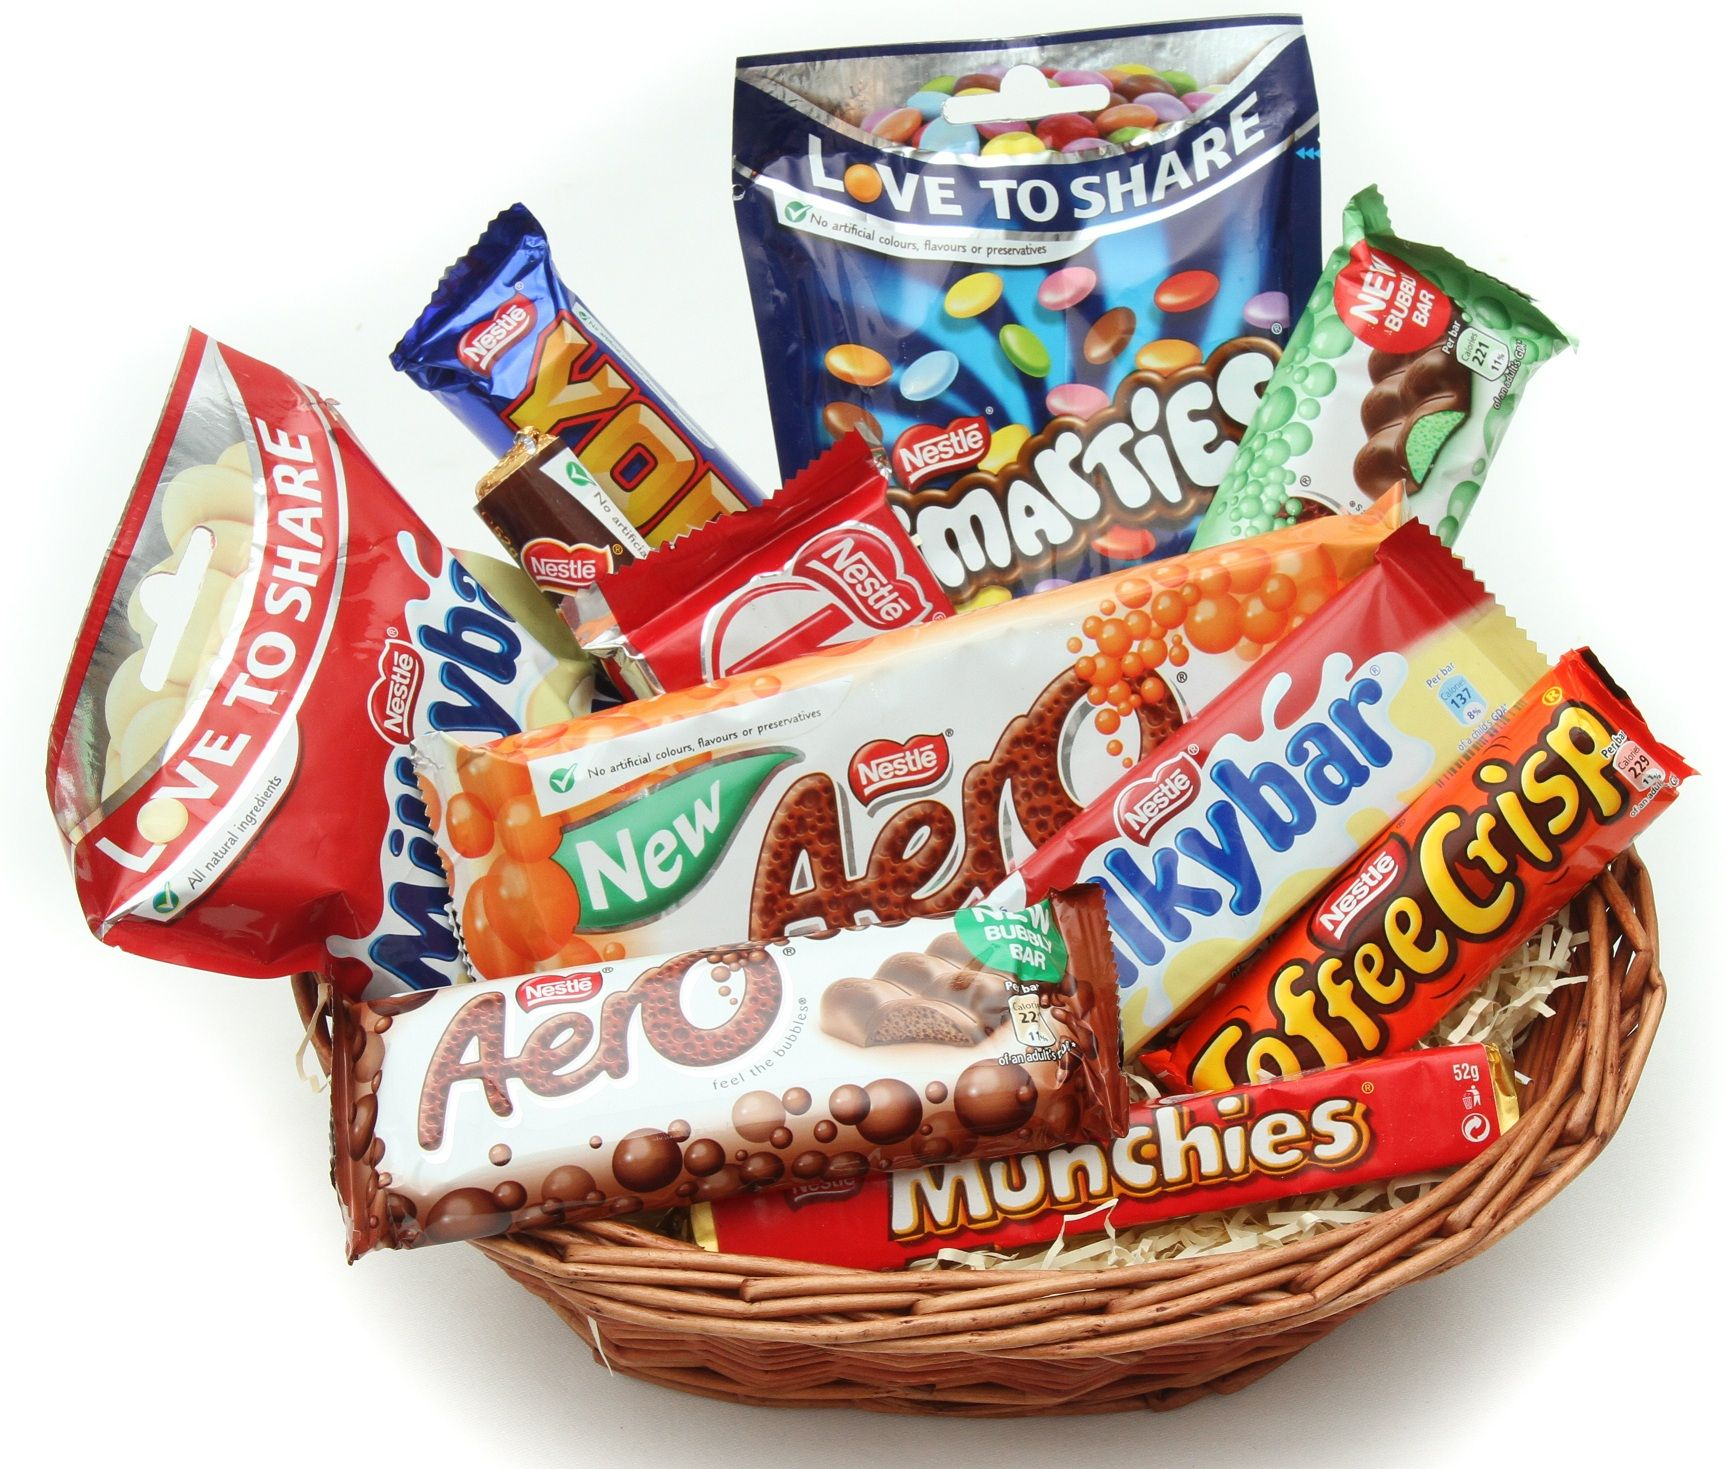 The Nestle Joy chocolate basket contains a range of yummy sweets ...